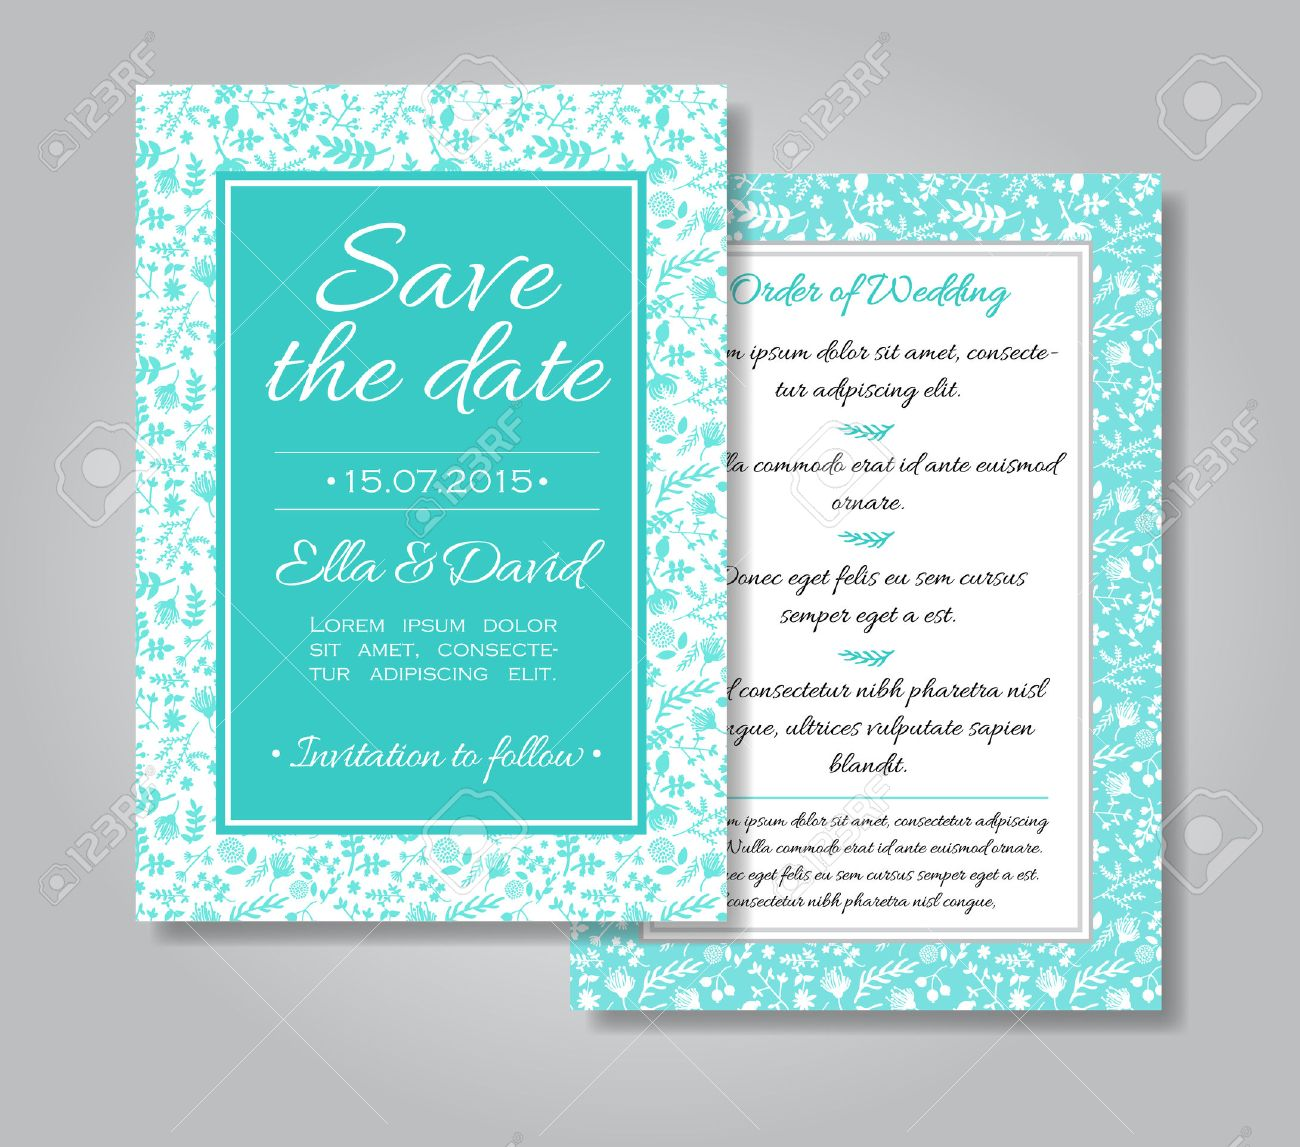 Wedding Invitation Card With Floral Design As Background In Tiffany Royalty Free Cliparts Vectors And Stock Illustration Image 43645691